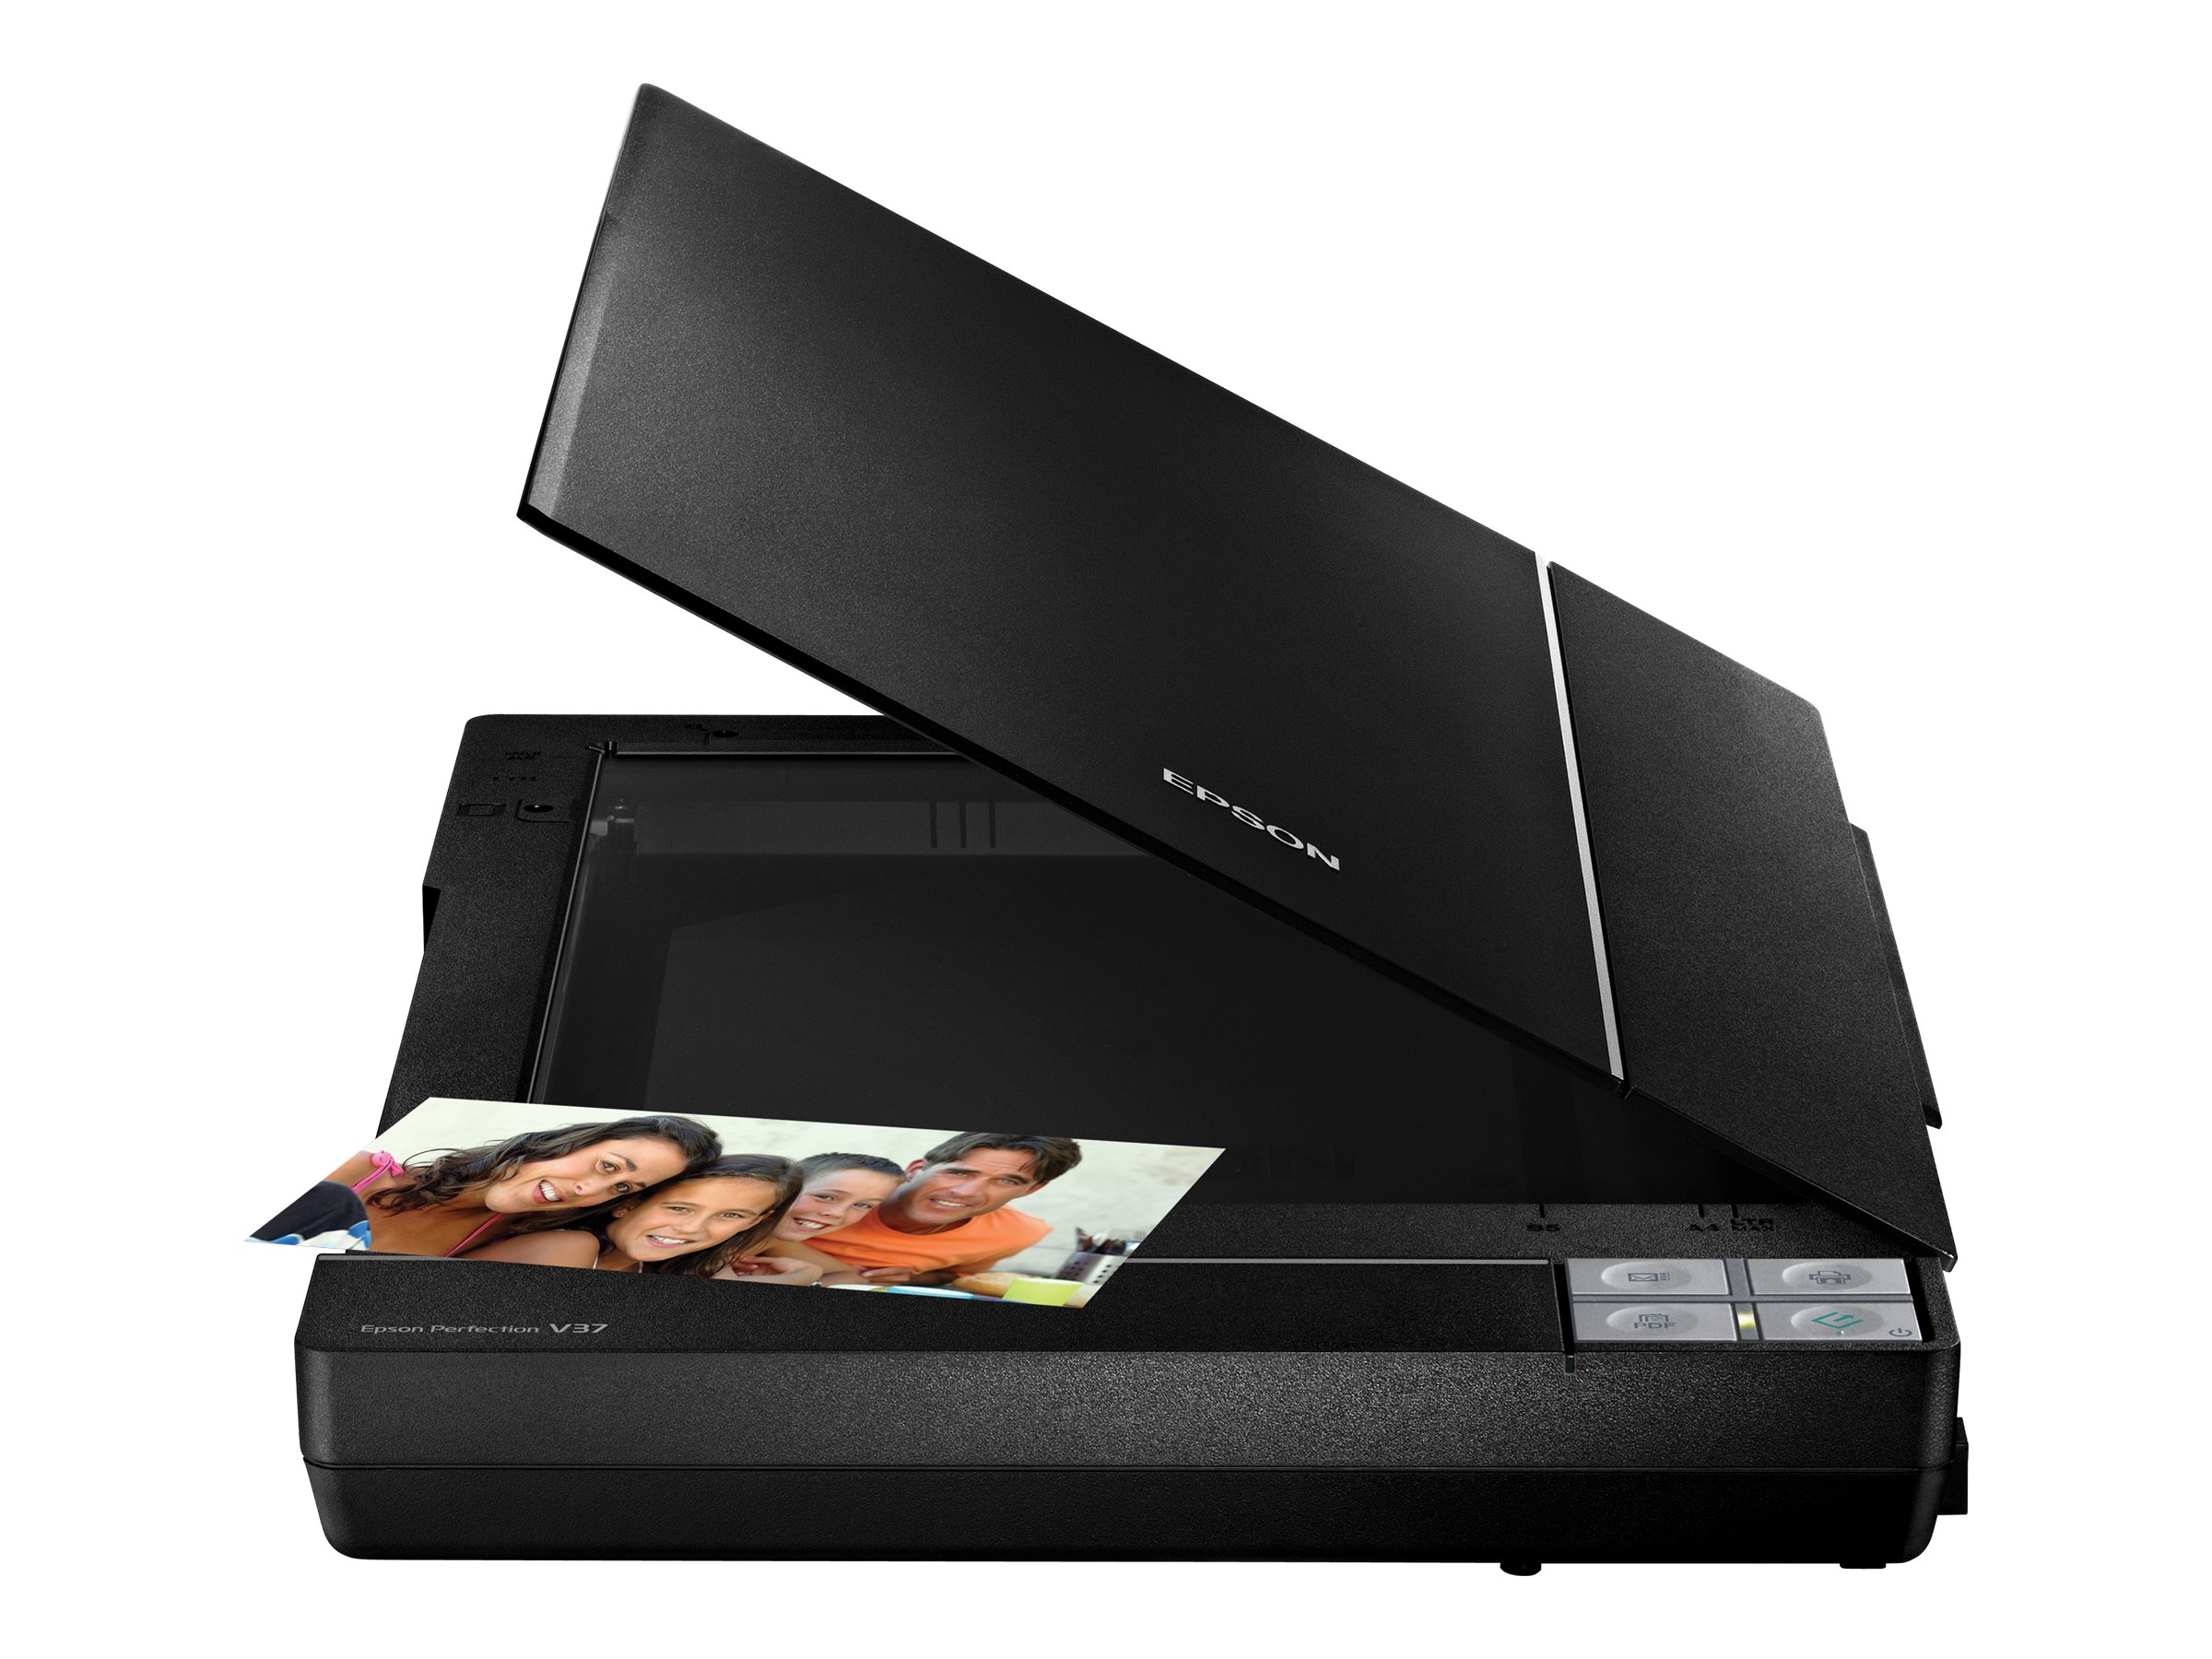 Refurb. Epson V37 Color Flatbed Scanner 8.5 x 11.7 4800dpi, B11B207201-N